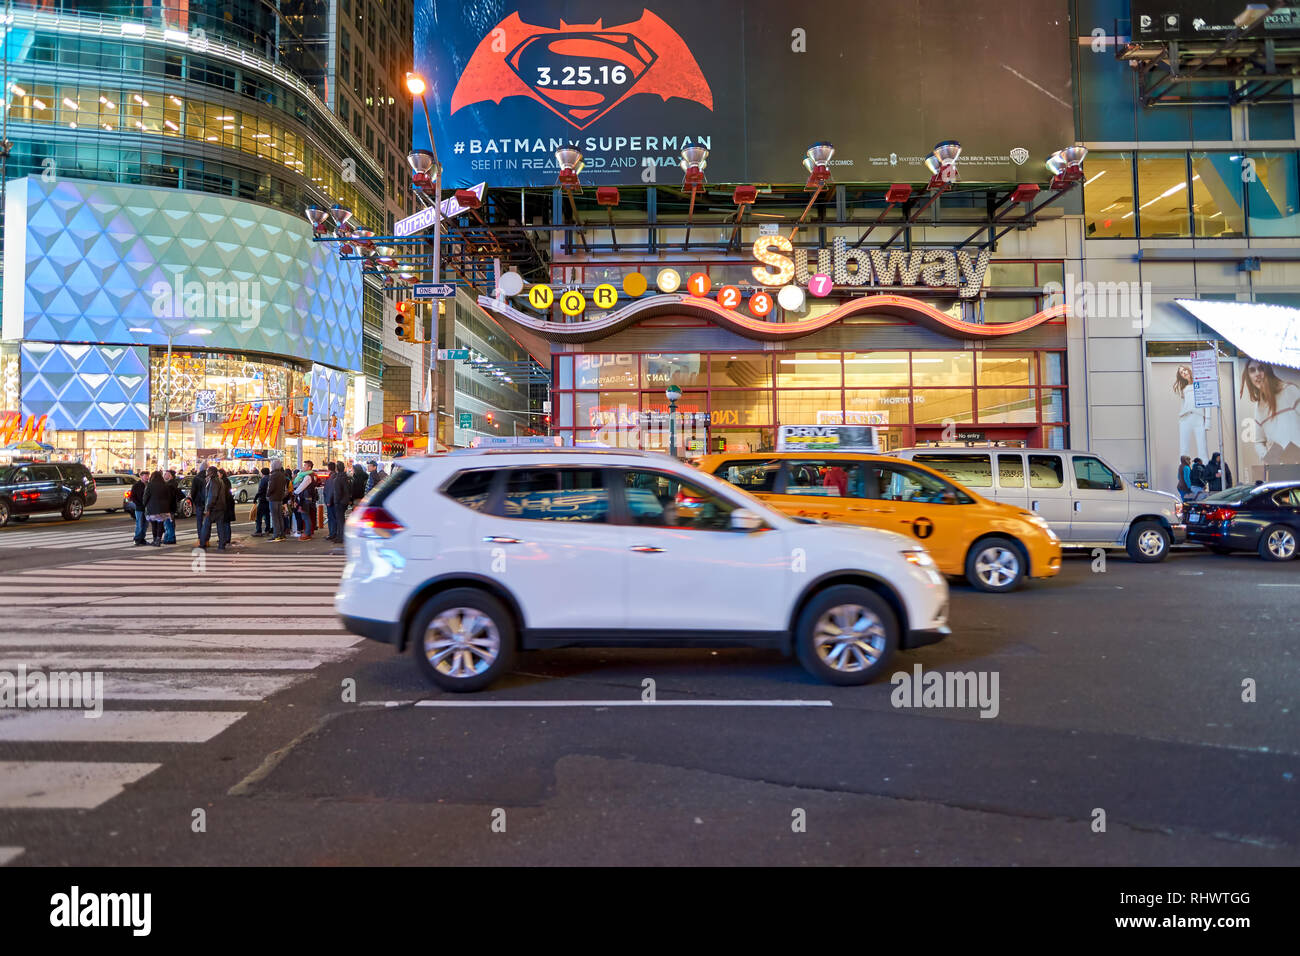 NEW YORK - CIRCA MARCH 2016: New York City at night. The City of New York, often called New York City or simply New York, is the most populous city in - Stock Image